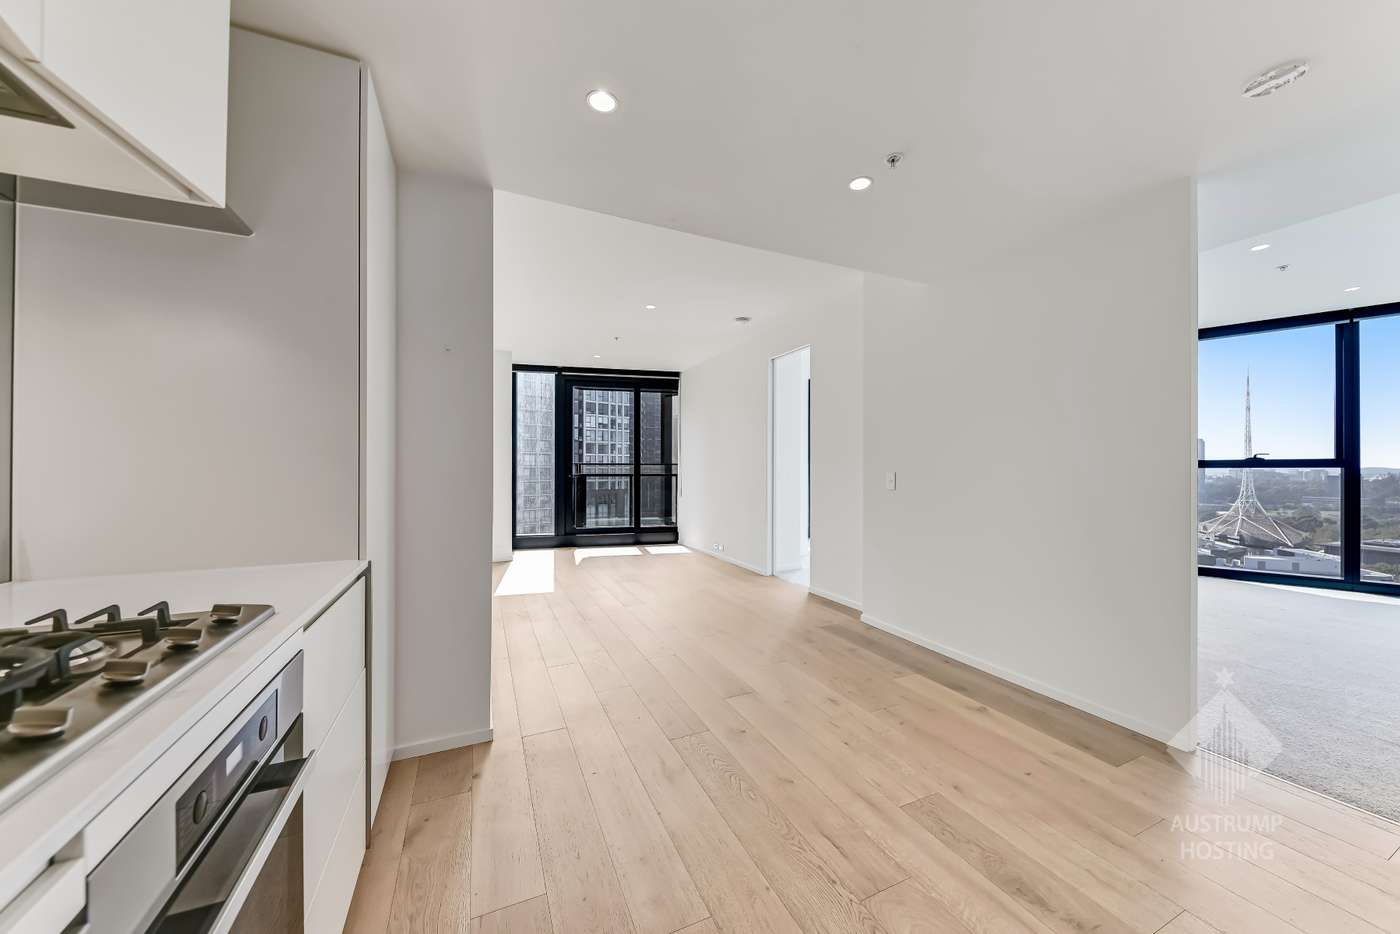 Main view of Homely apartment listing, 2201/18 Hoff boulevard, Southbank VIC 3006